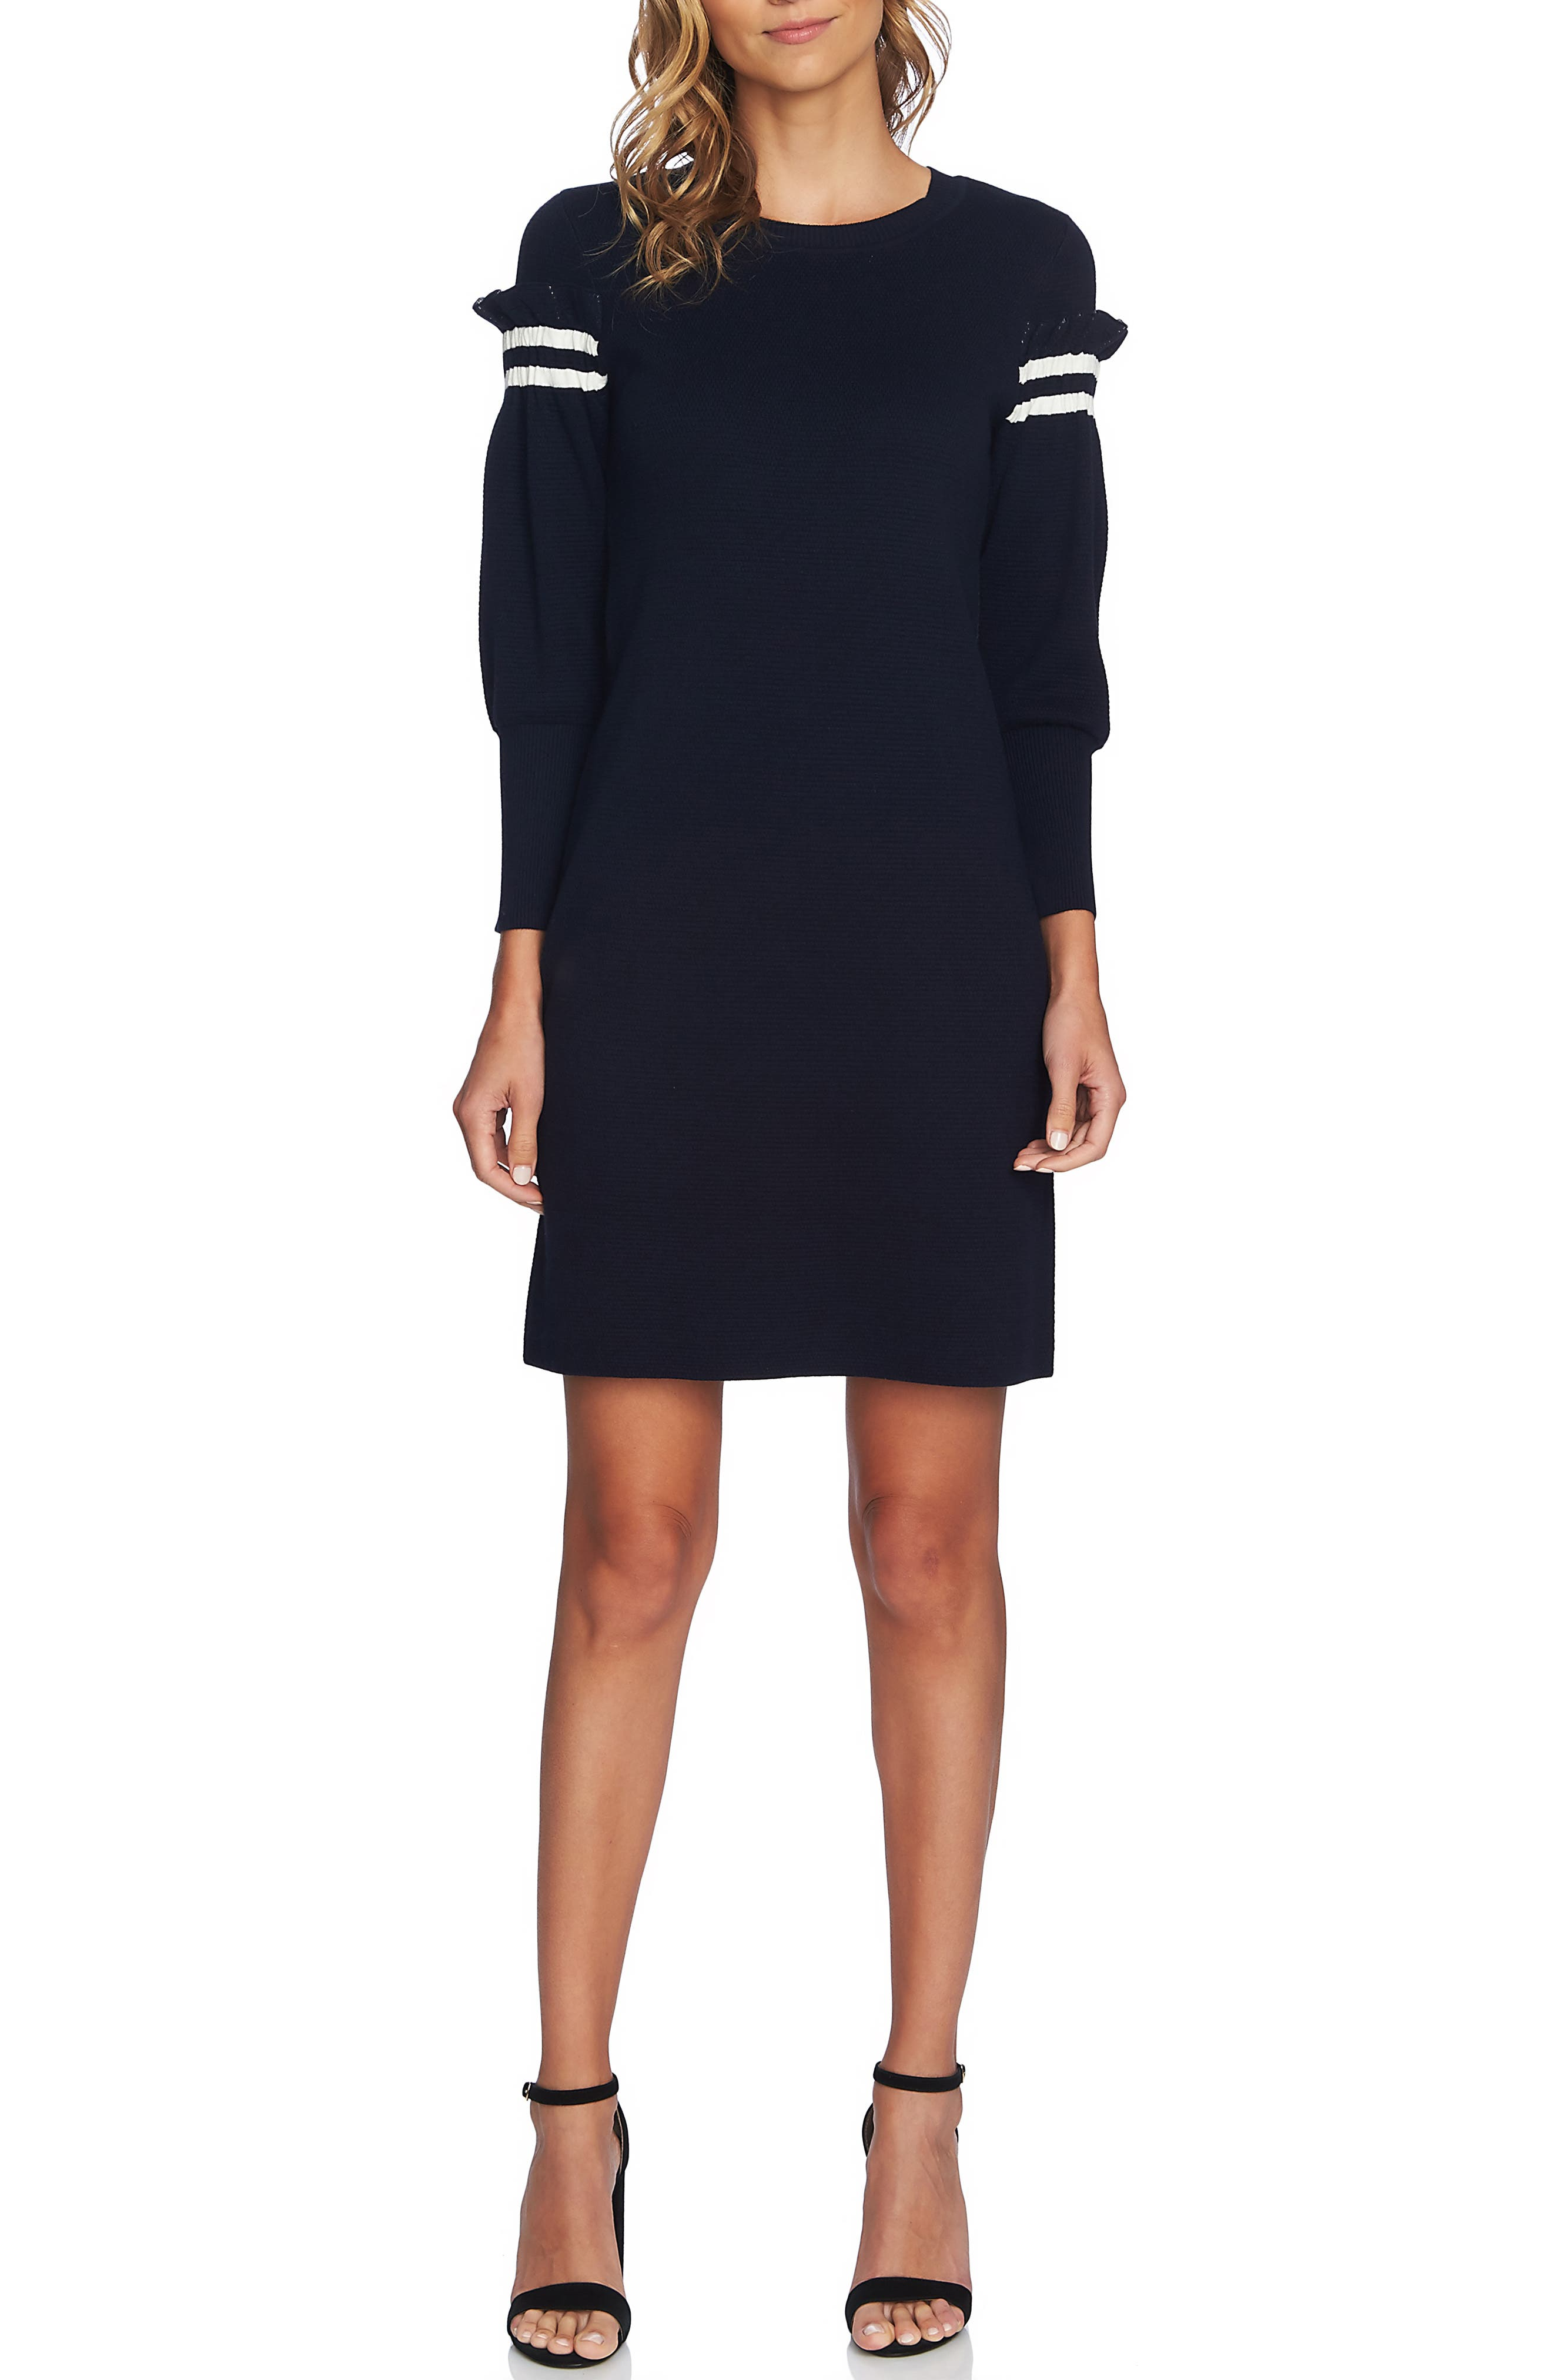 Cece Puffed Sleeve Sweater Dress, Black